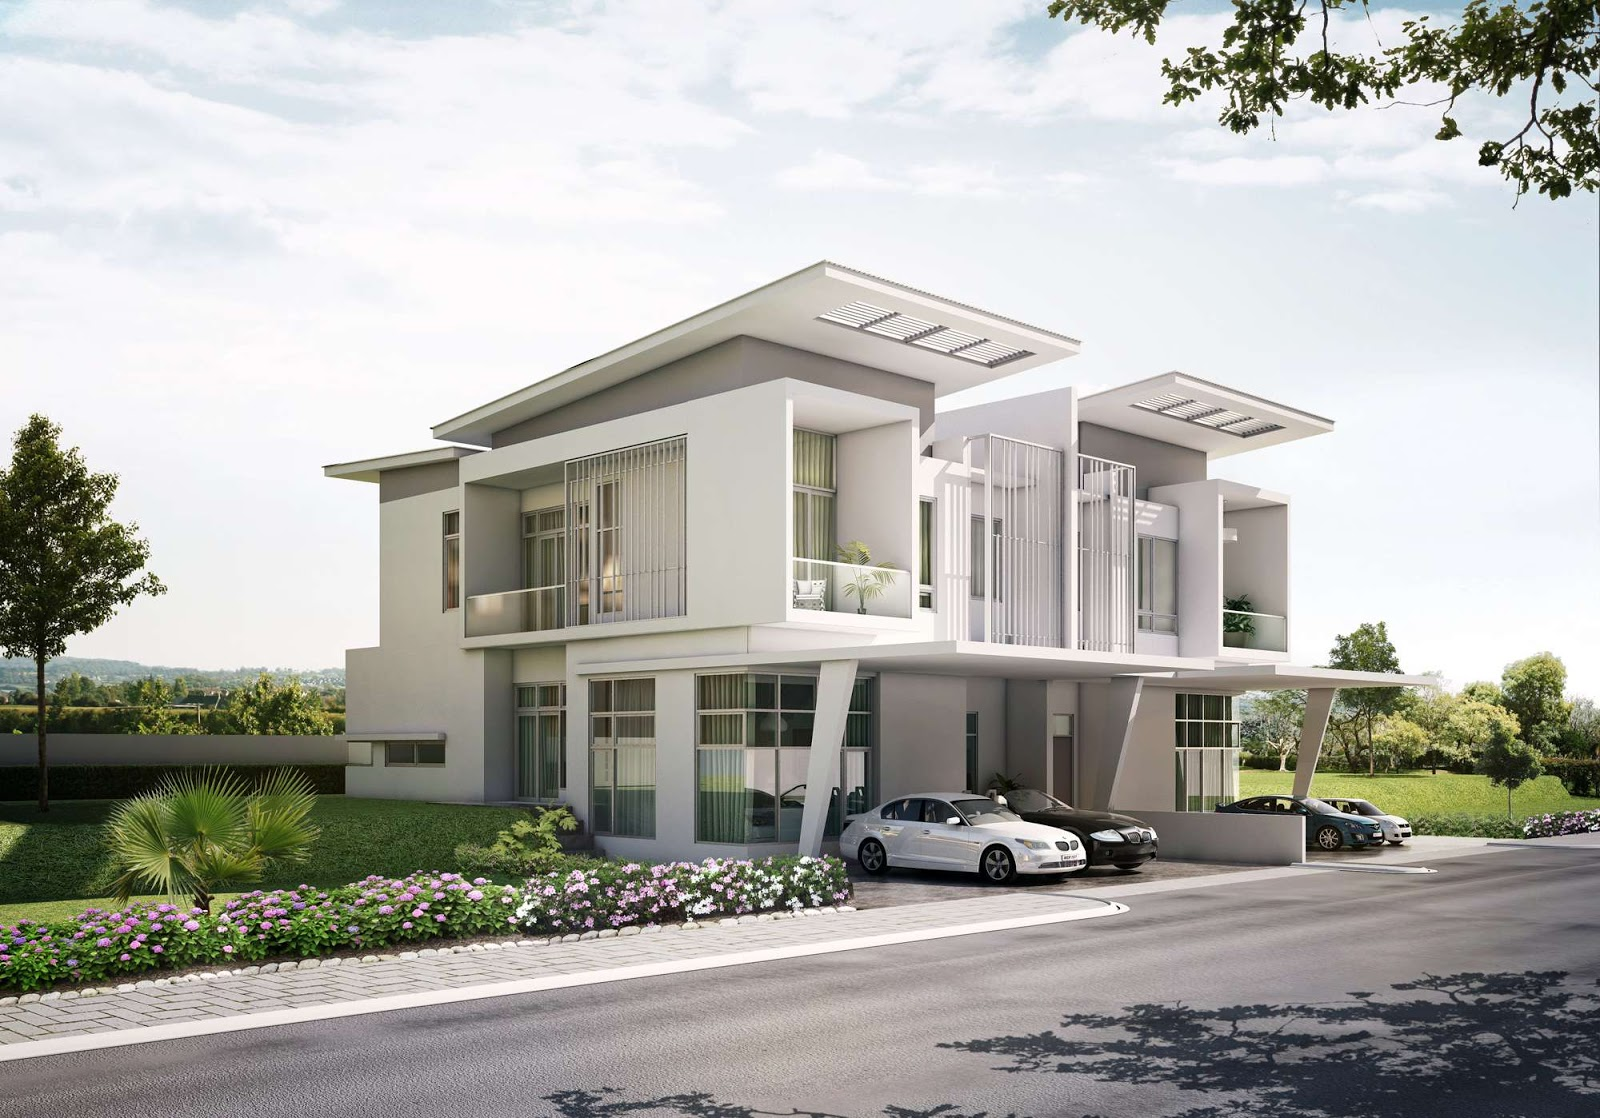 Singapore modern homes exterior designs home interior - Small home outside design ...